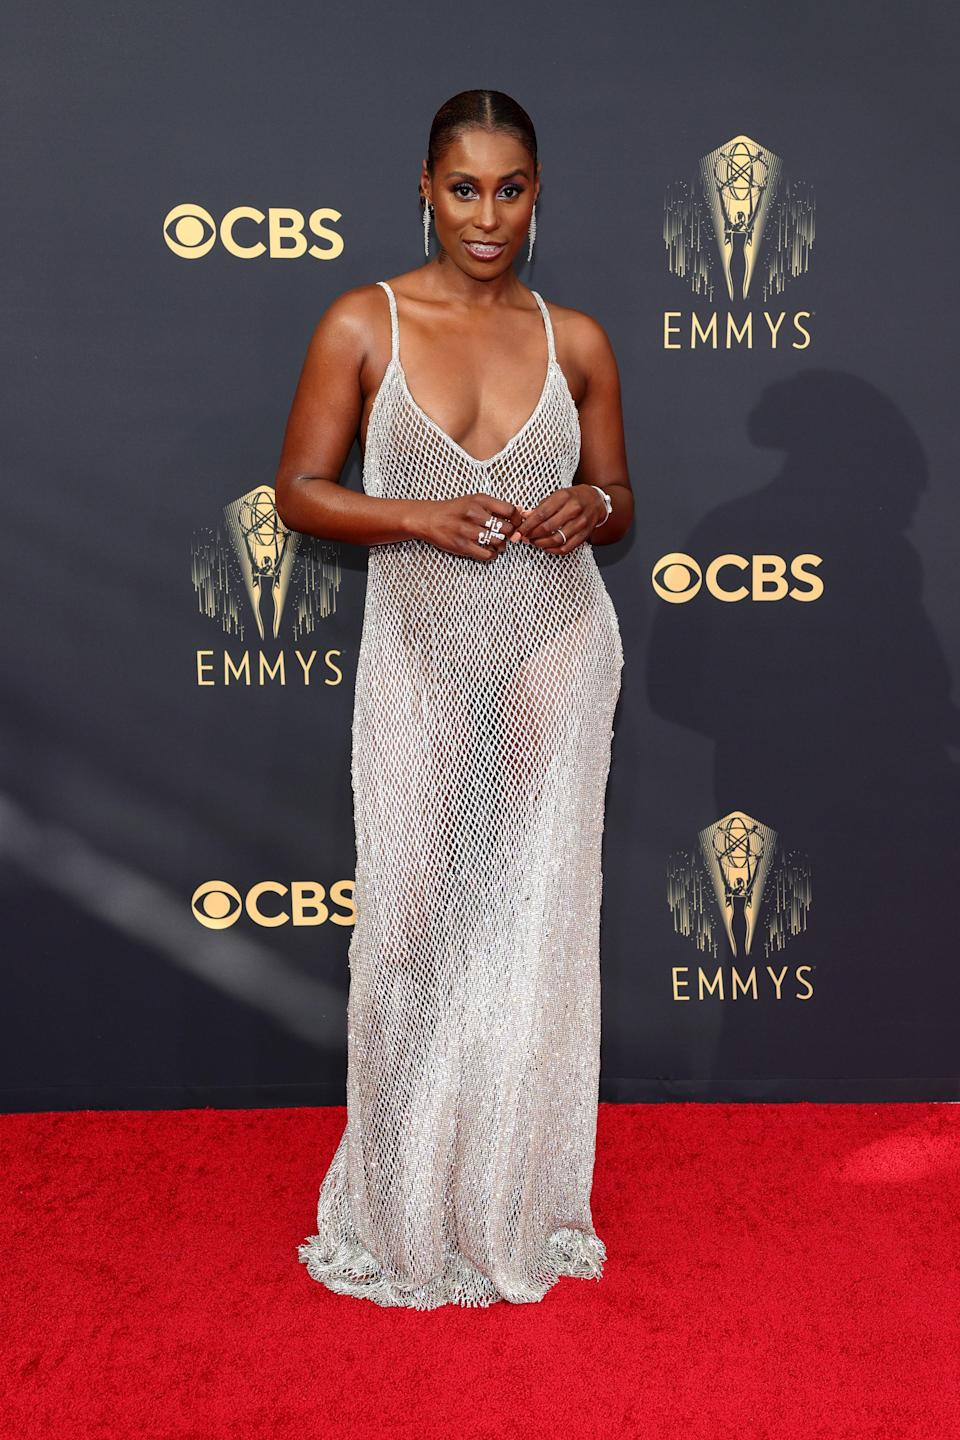 Issa looked glam in her slinky silver gown from Aliétte, pulled-back hair, and dangling diamond earrings.